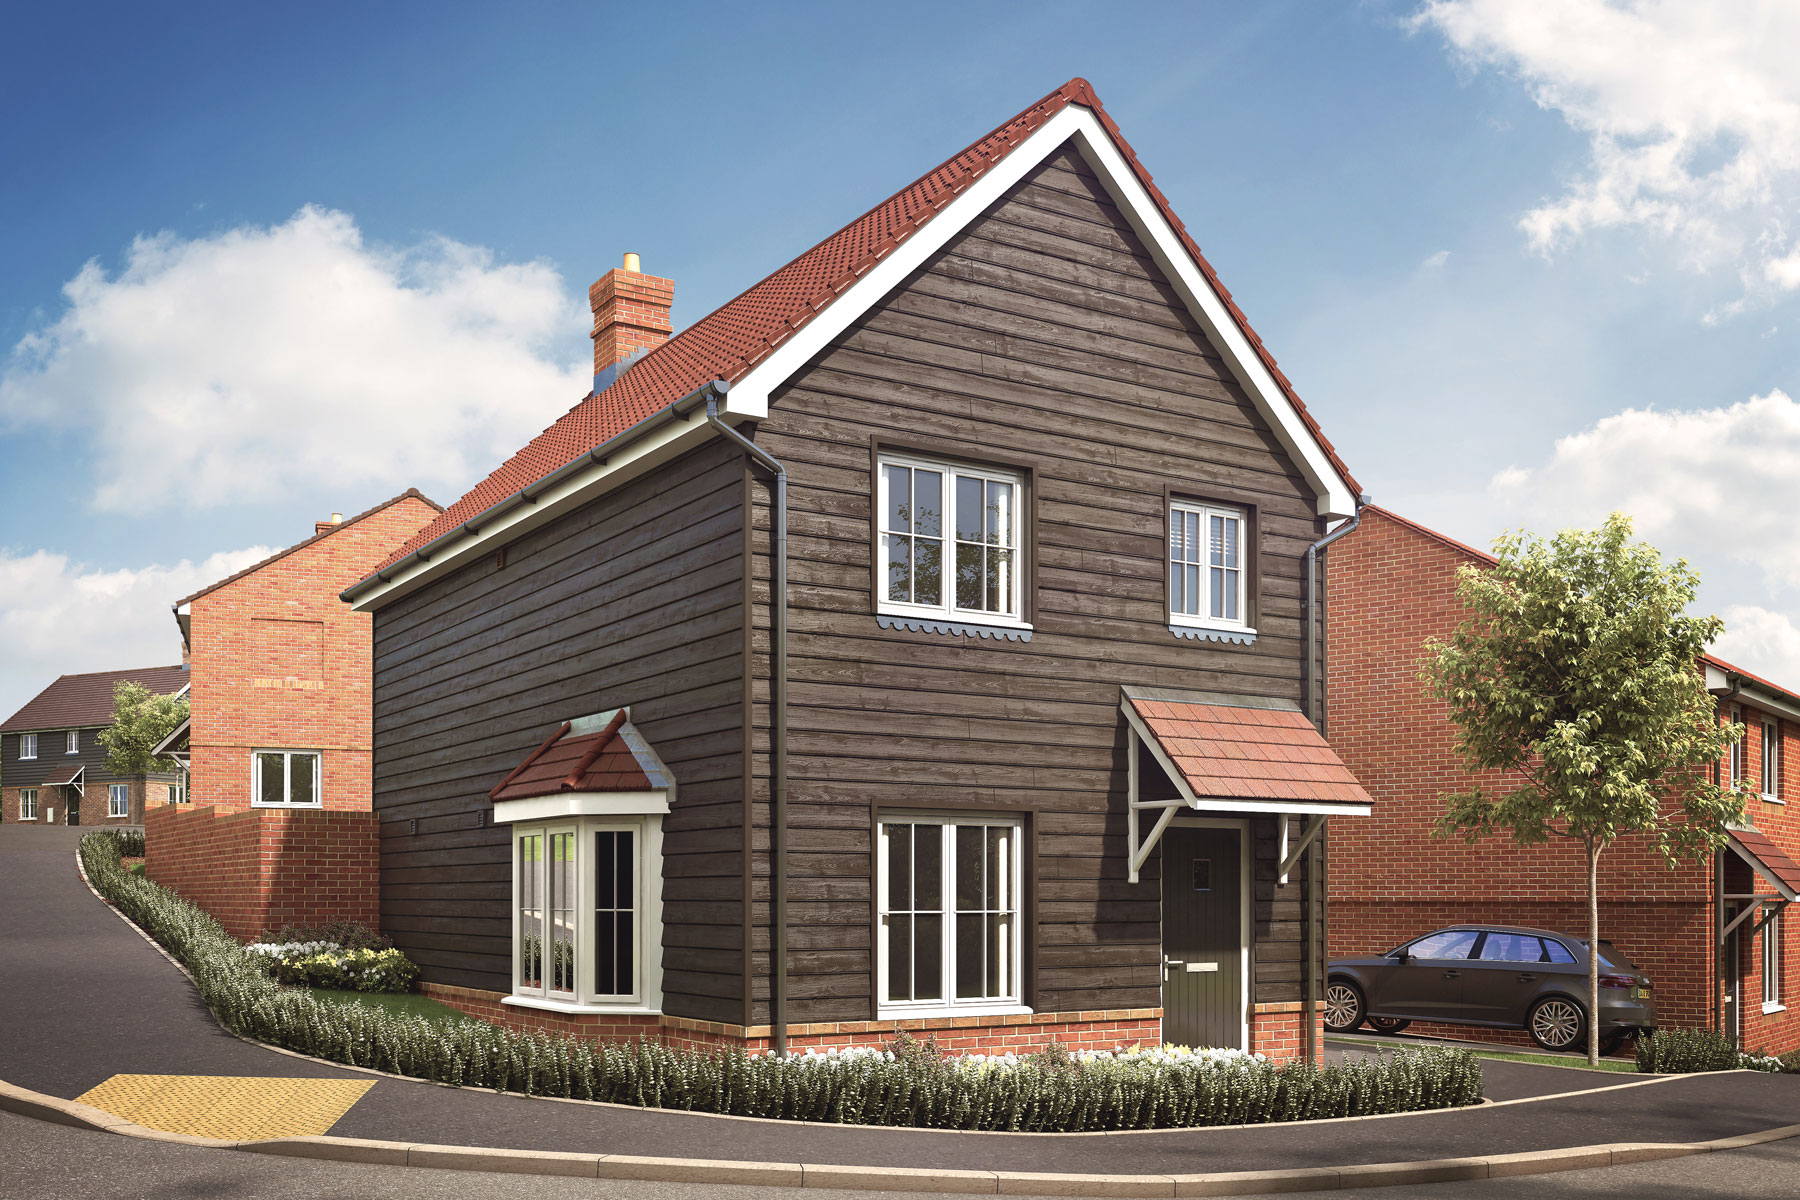 Artist's impression of a typical Mountbatten home